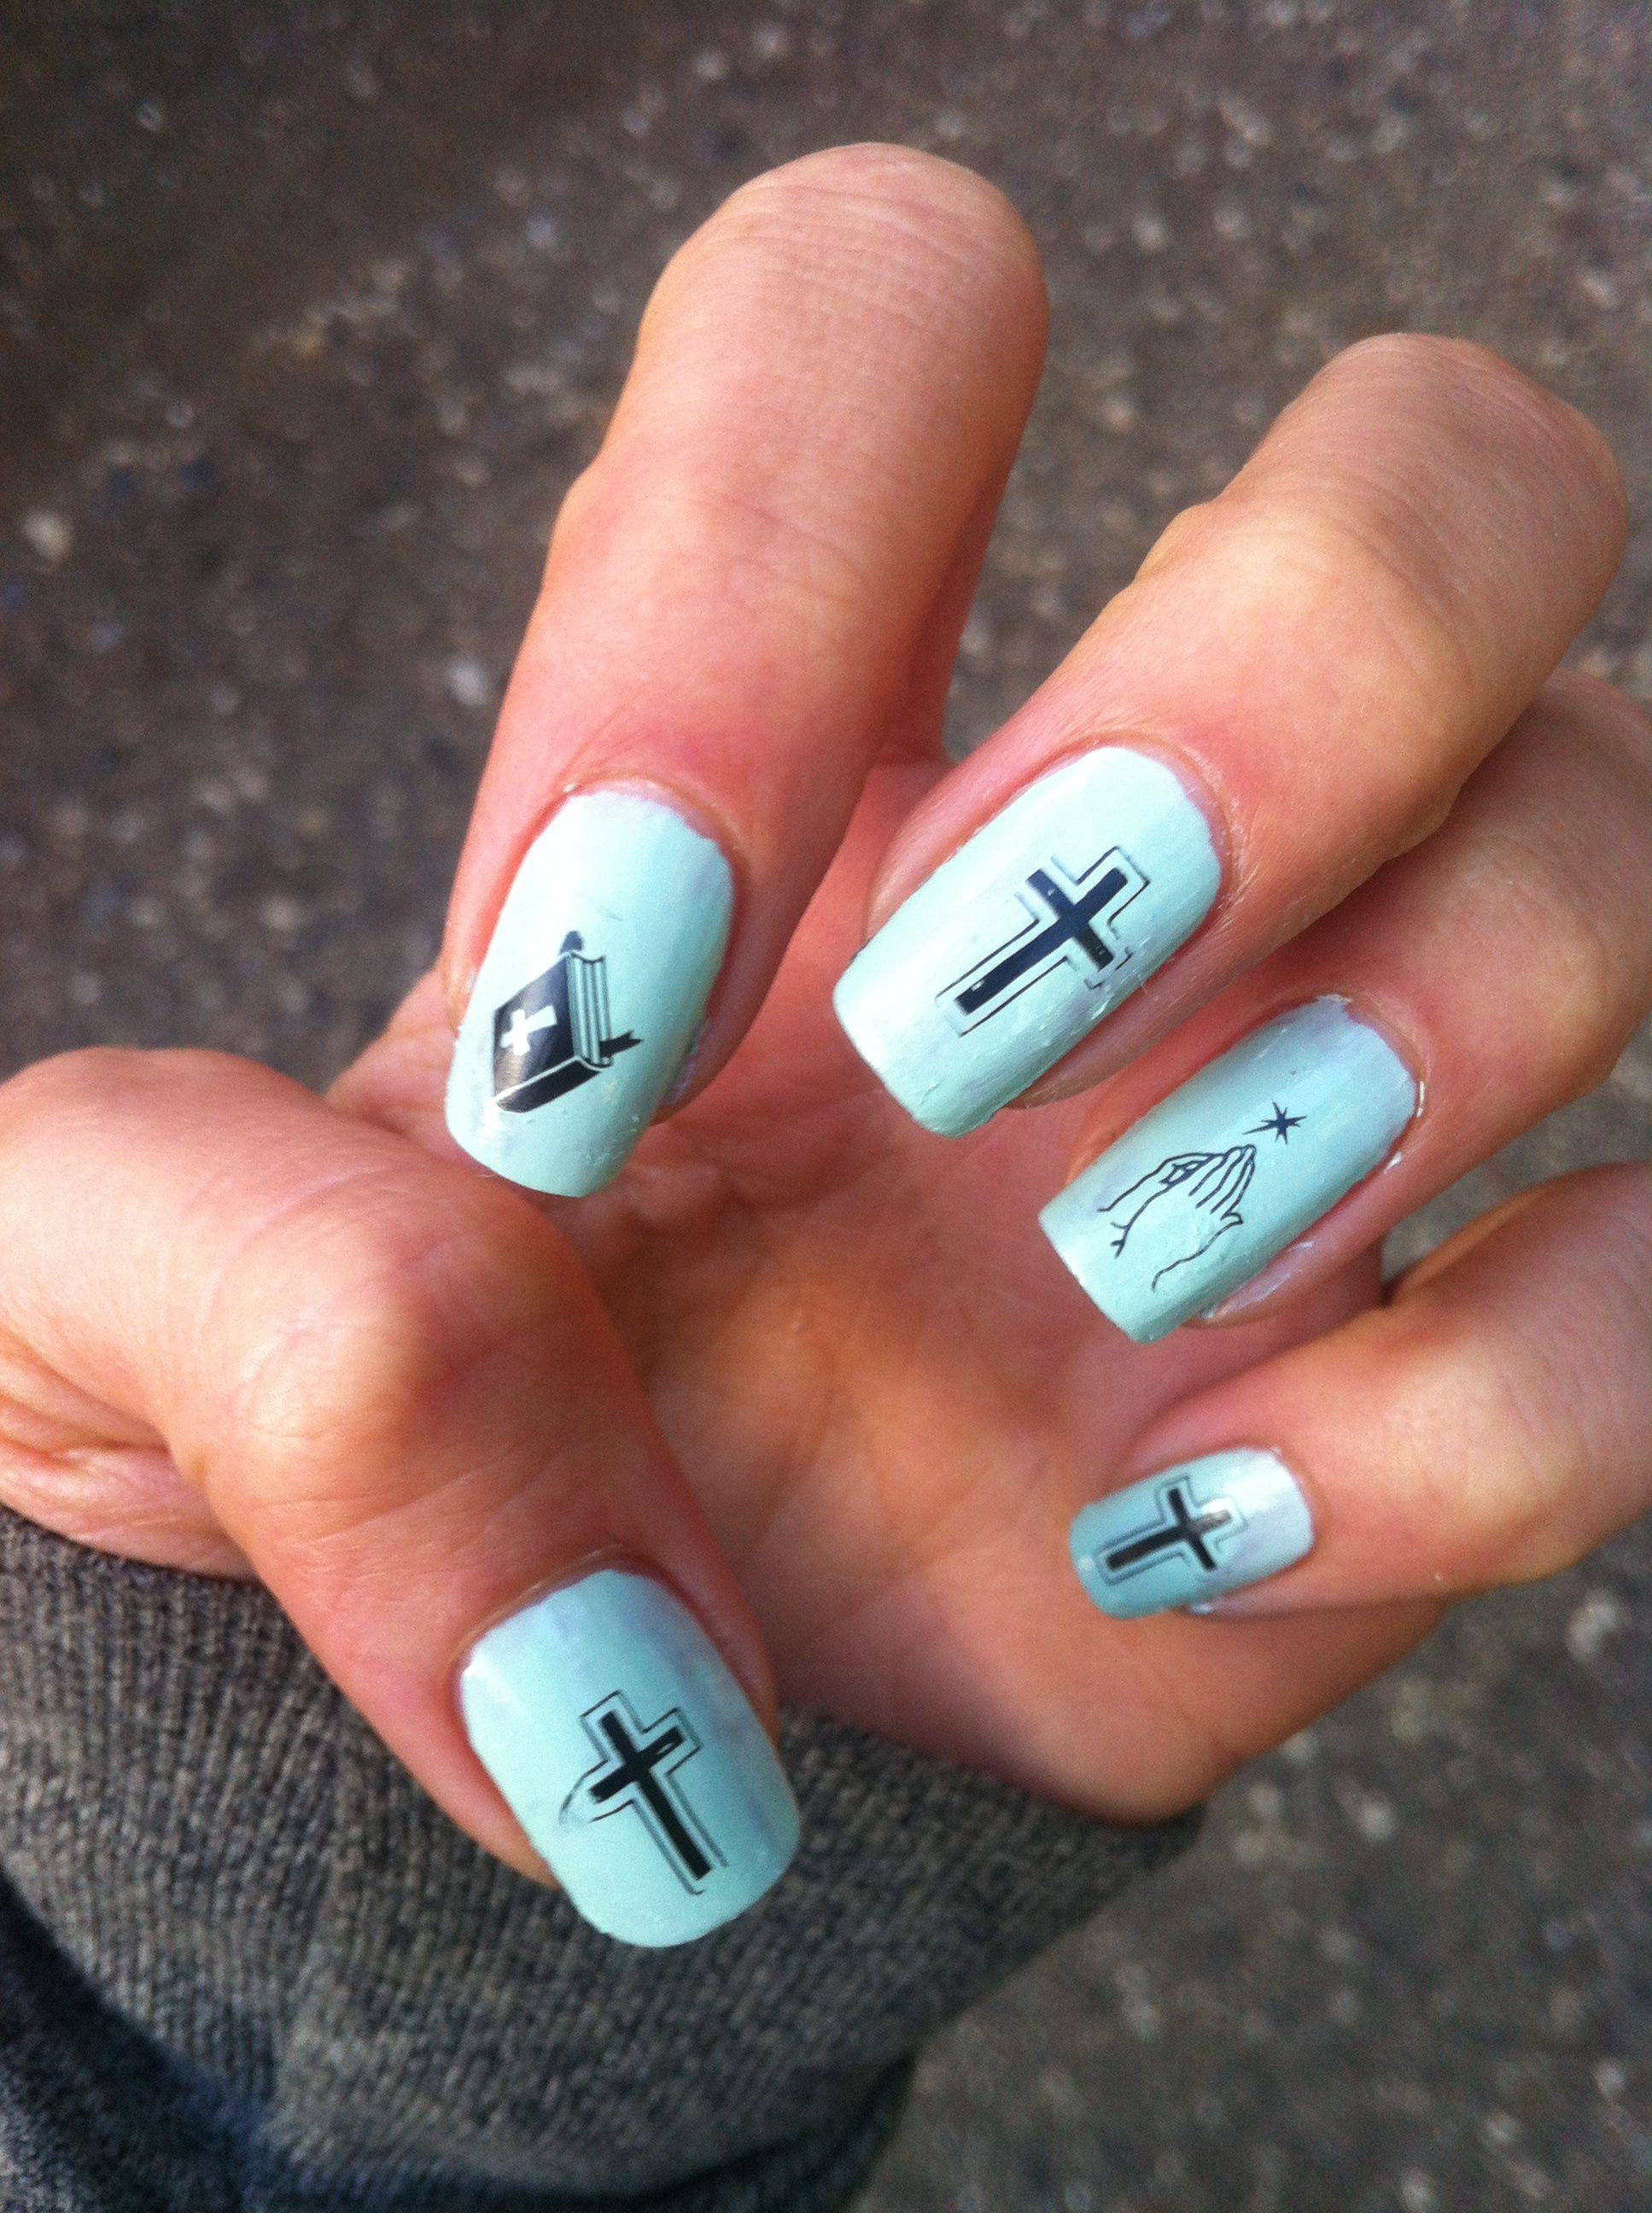 my sweet baby jesus nails // nail stamp | Nails | Pinterest | Nail ...